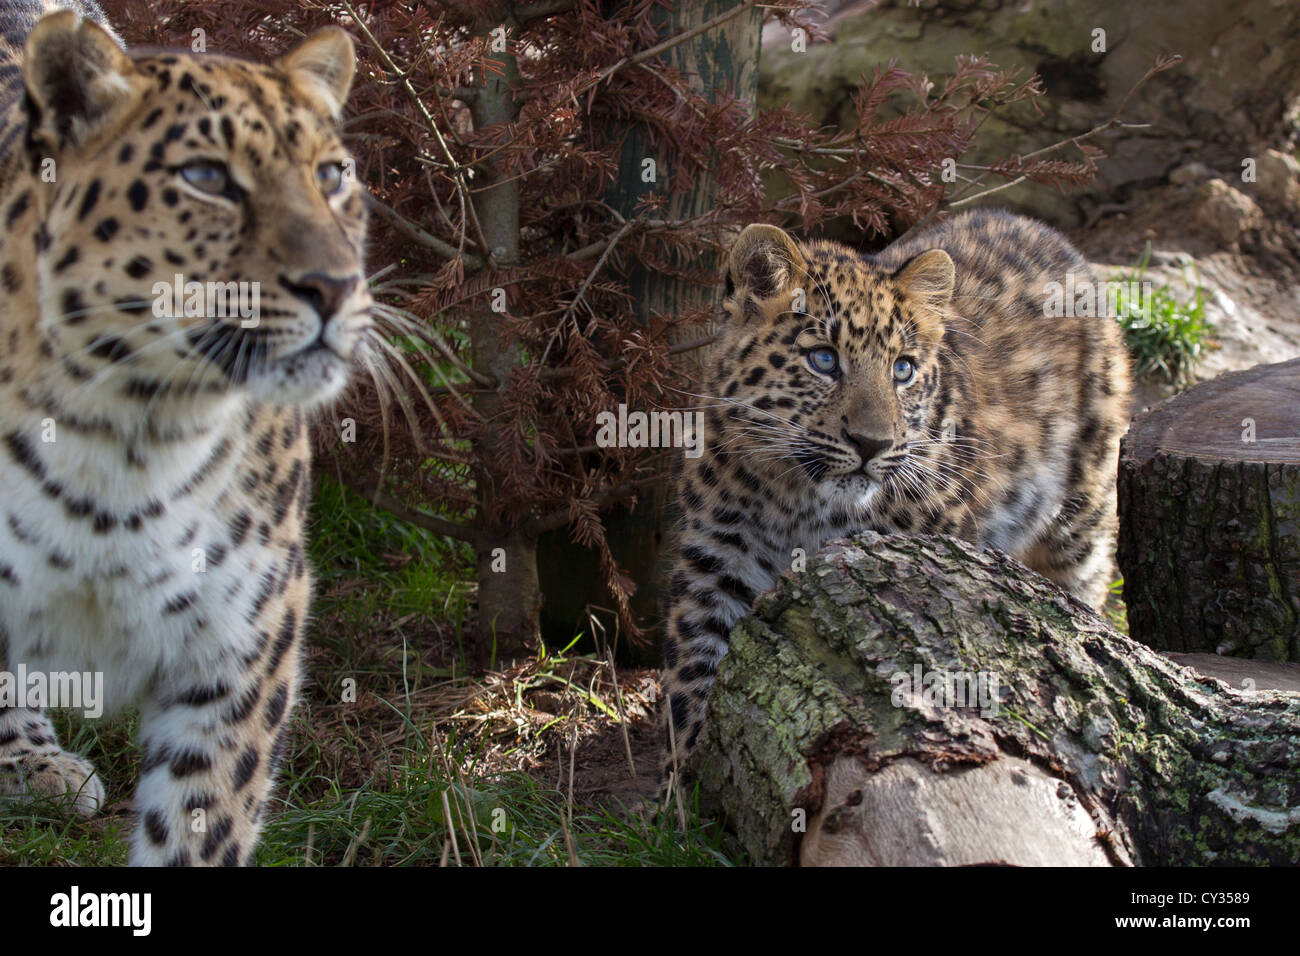 Amur Leopards, mother and 2 months old cub - Stock Image